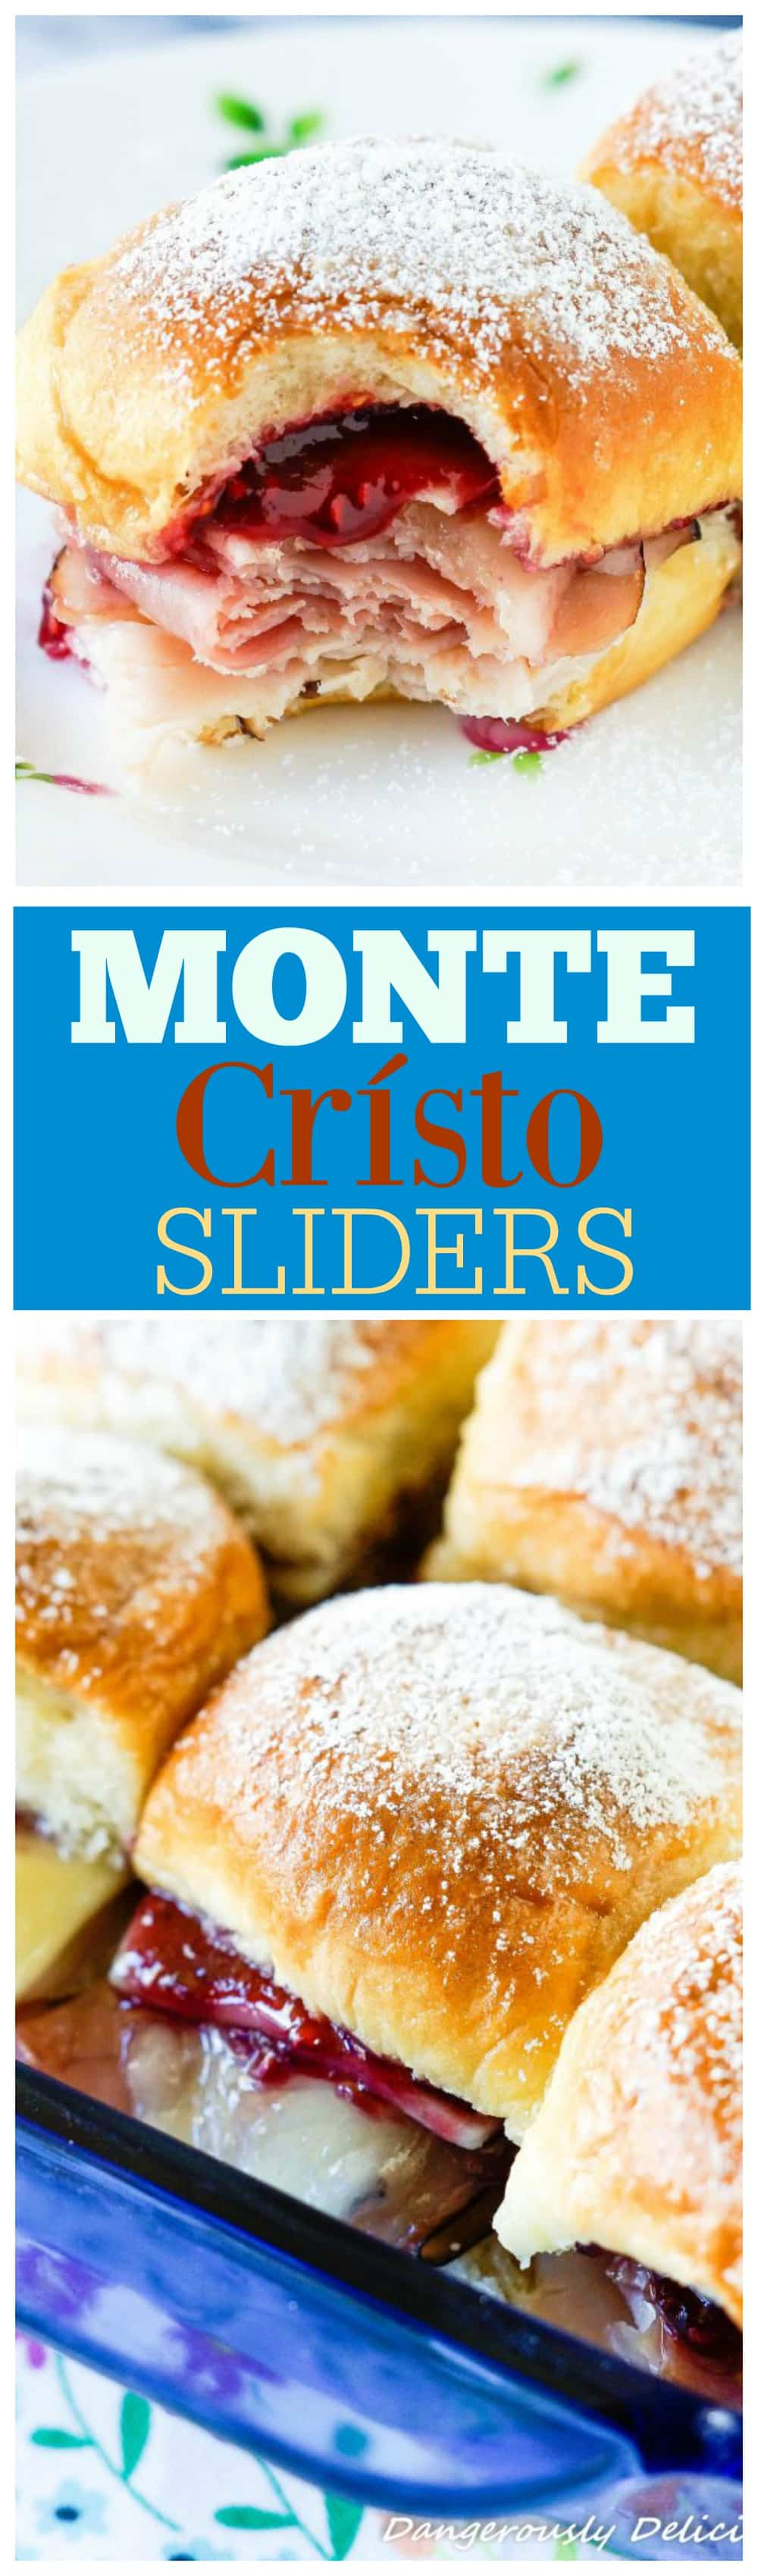 These Monte Crísto Sliders will take you back to that happy place or, if you've never tried one, create a new happy memory in your very own home. Perfect for Spring, serve these sliders for Easter brunch or as part of a Mother's Day Breakfast.